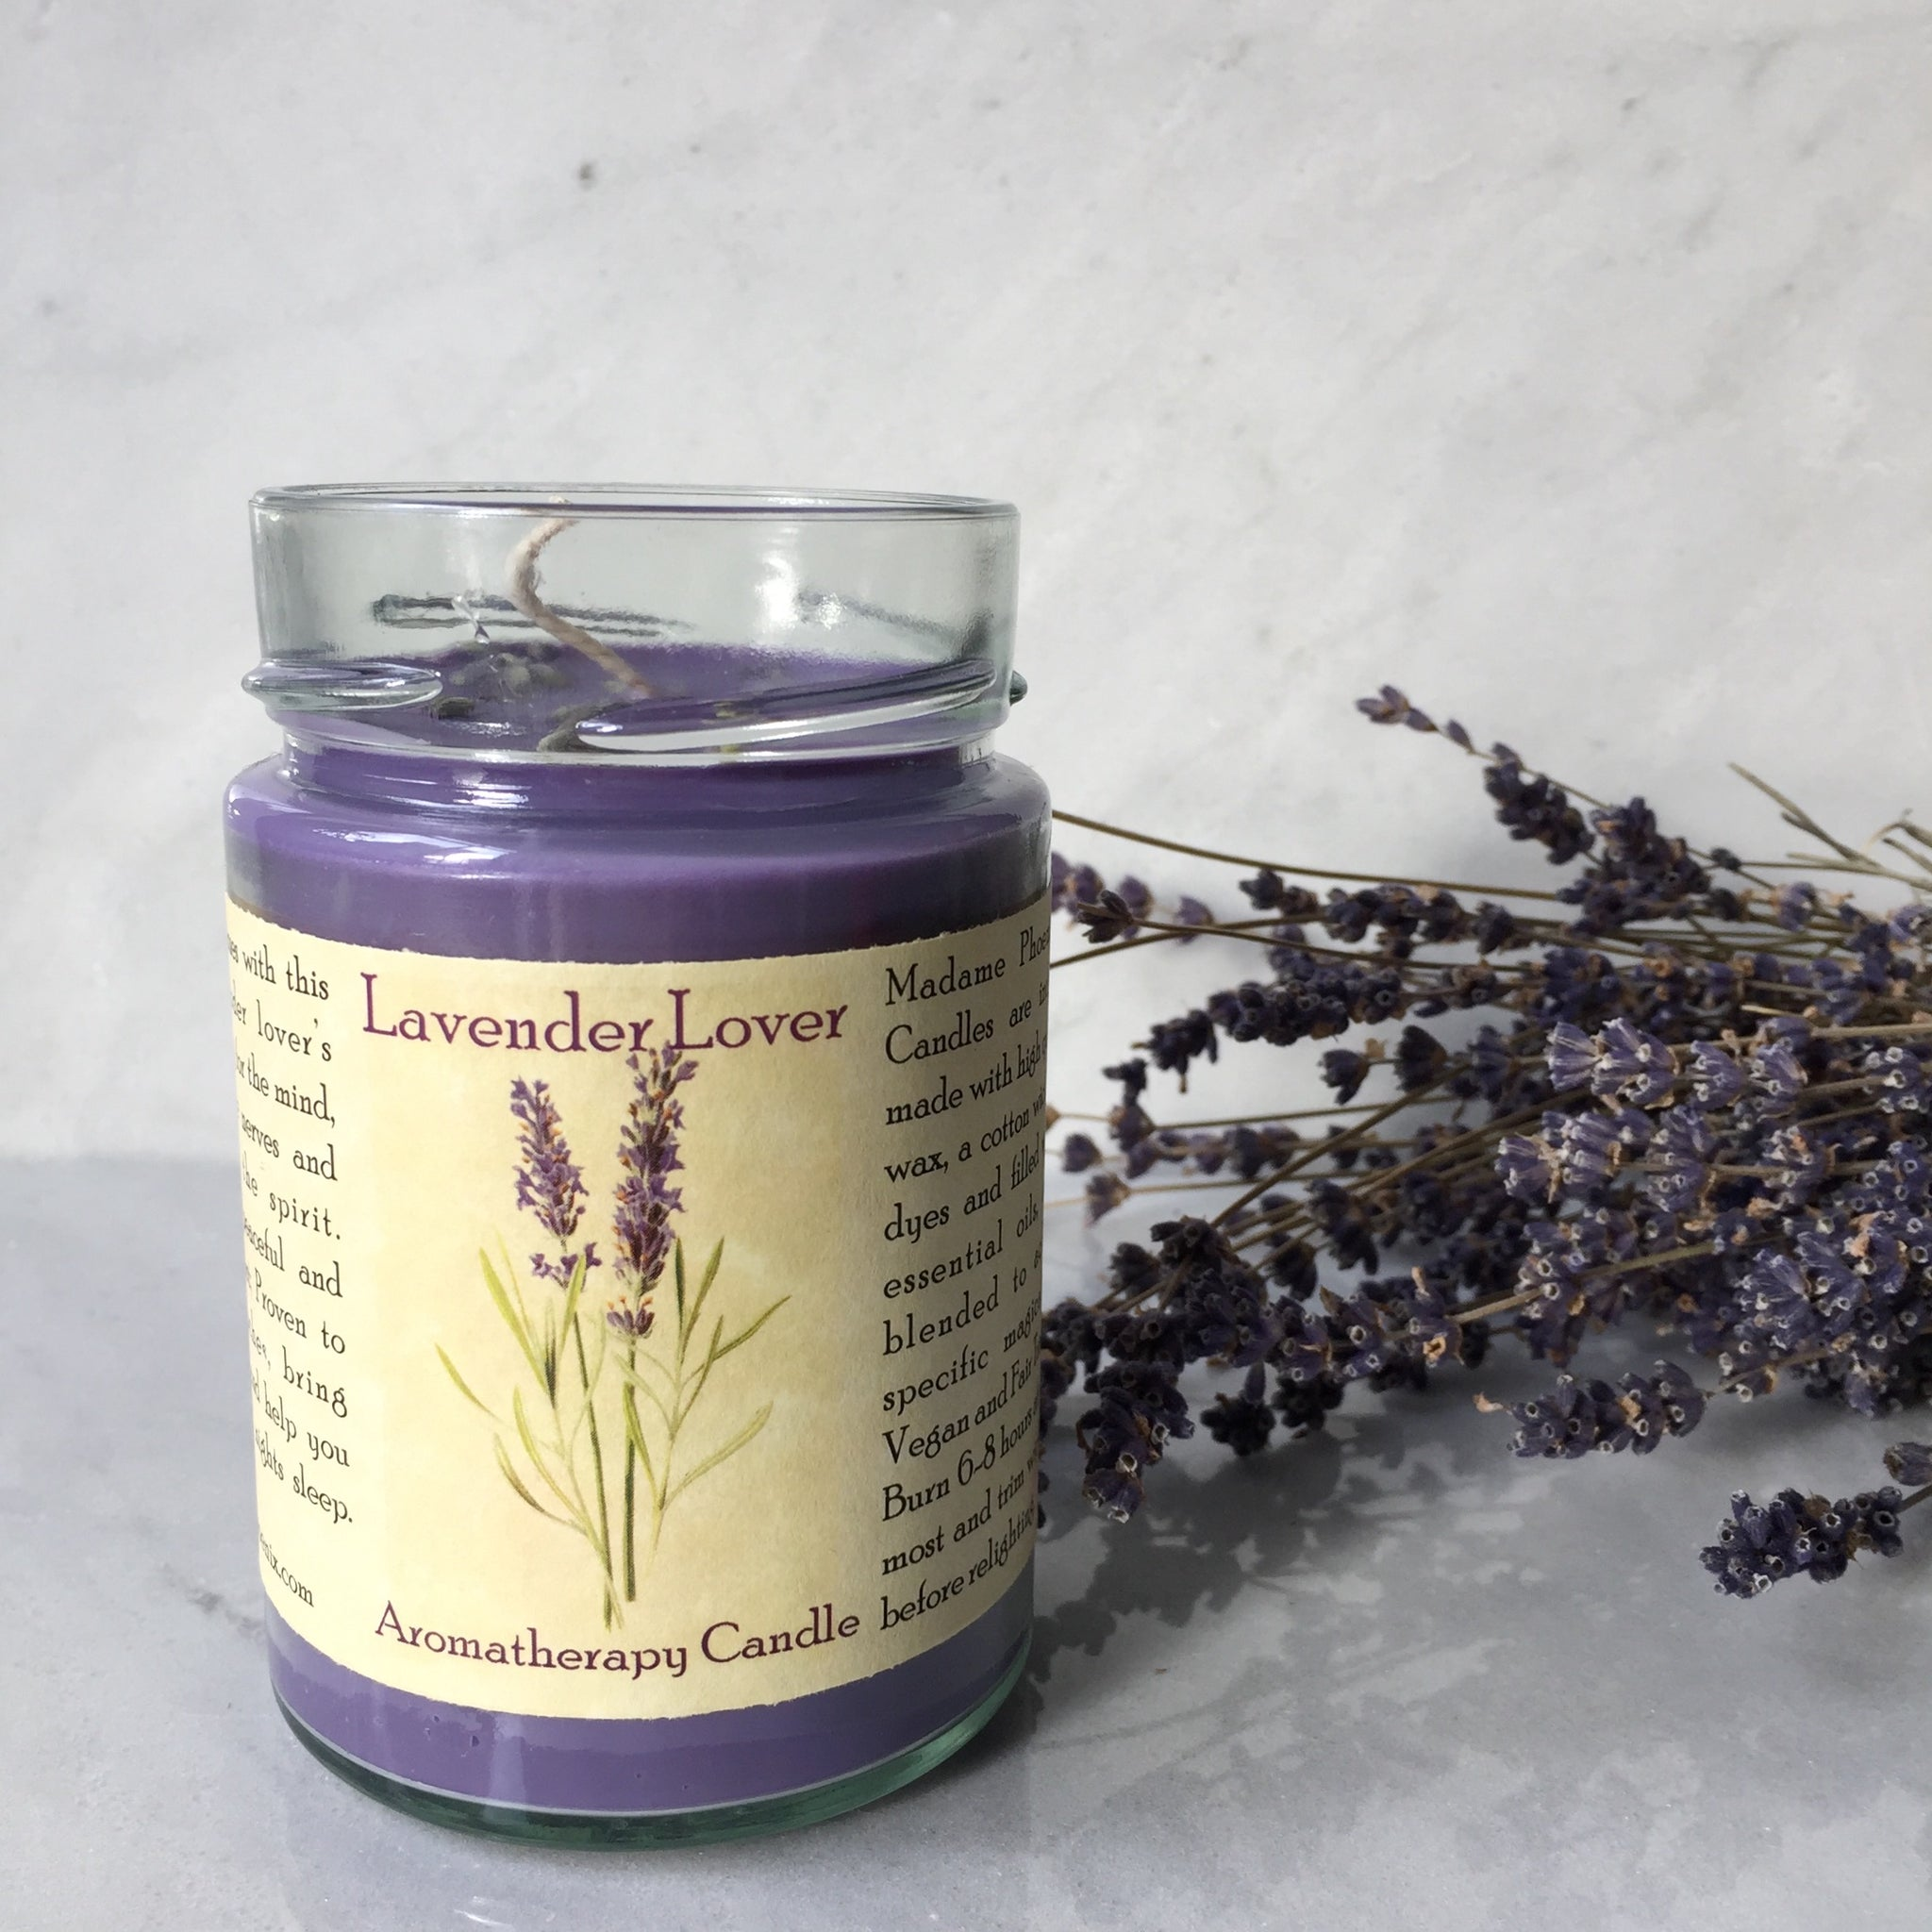 Lavender Lover Magic Candle